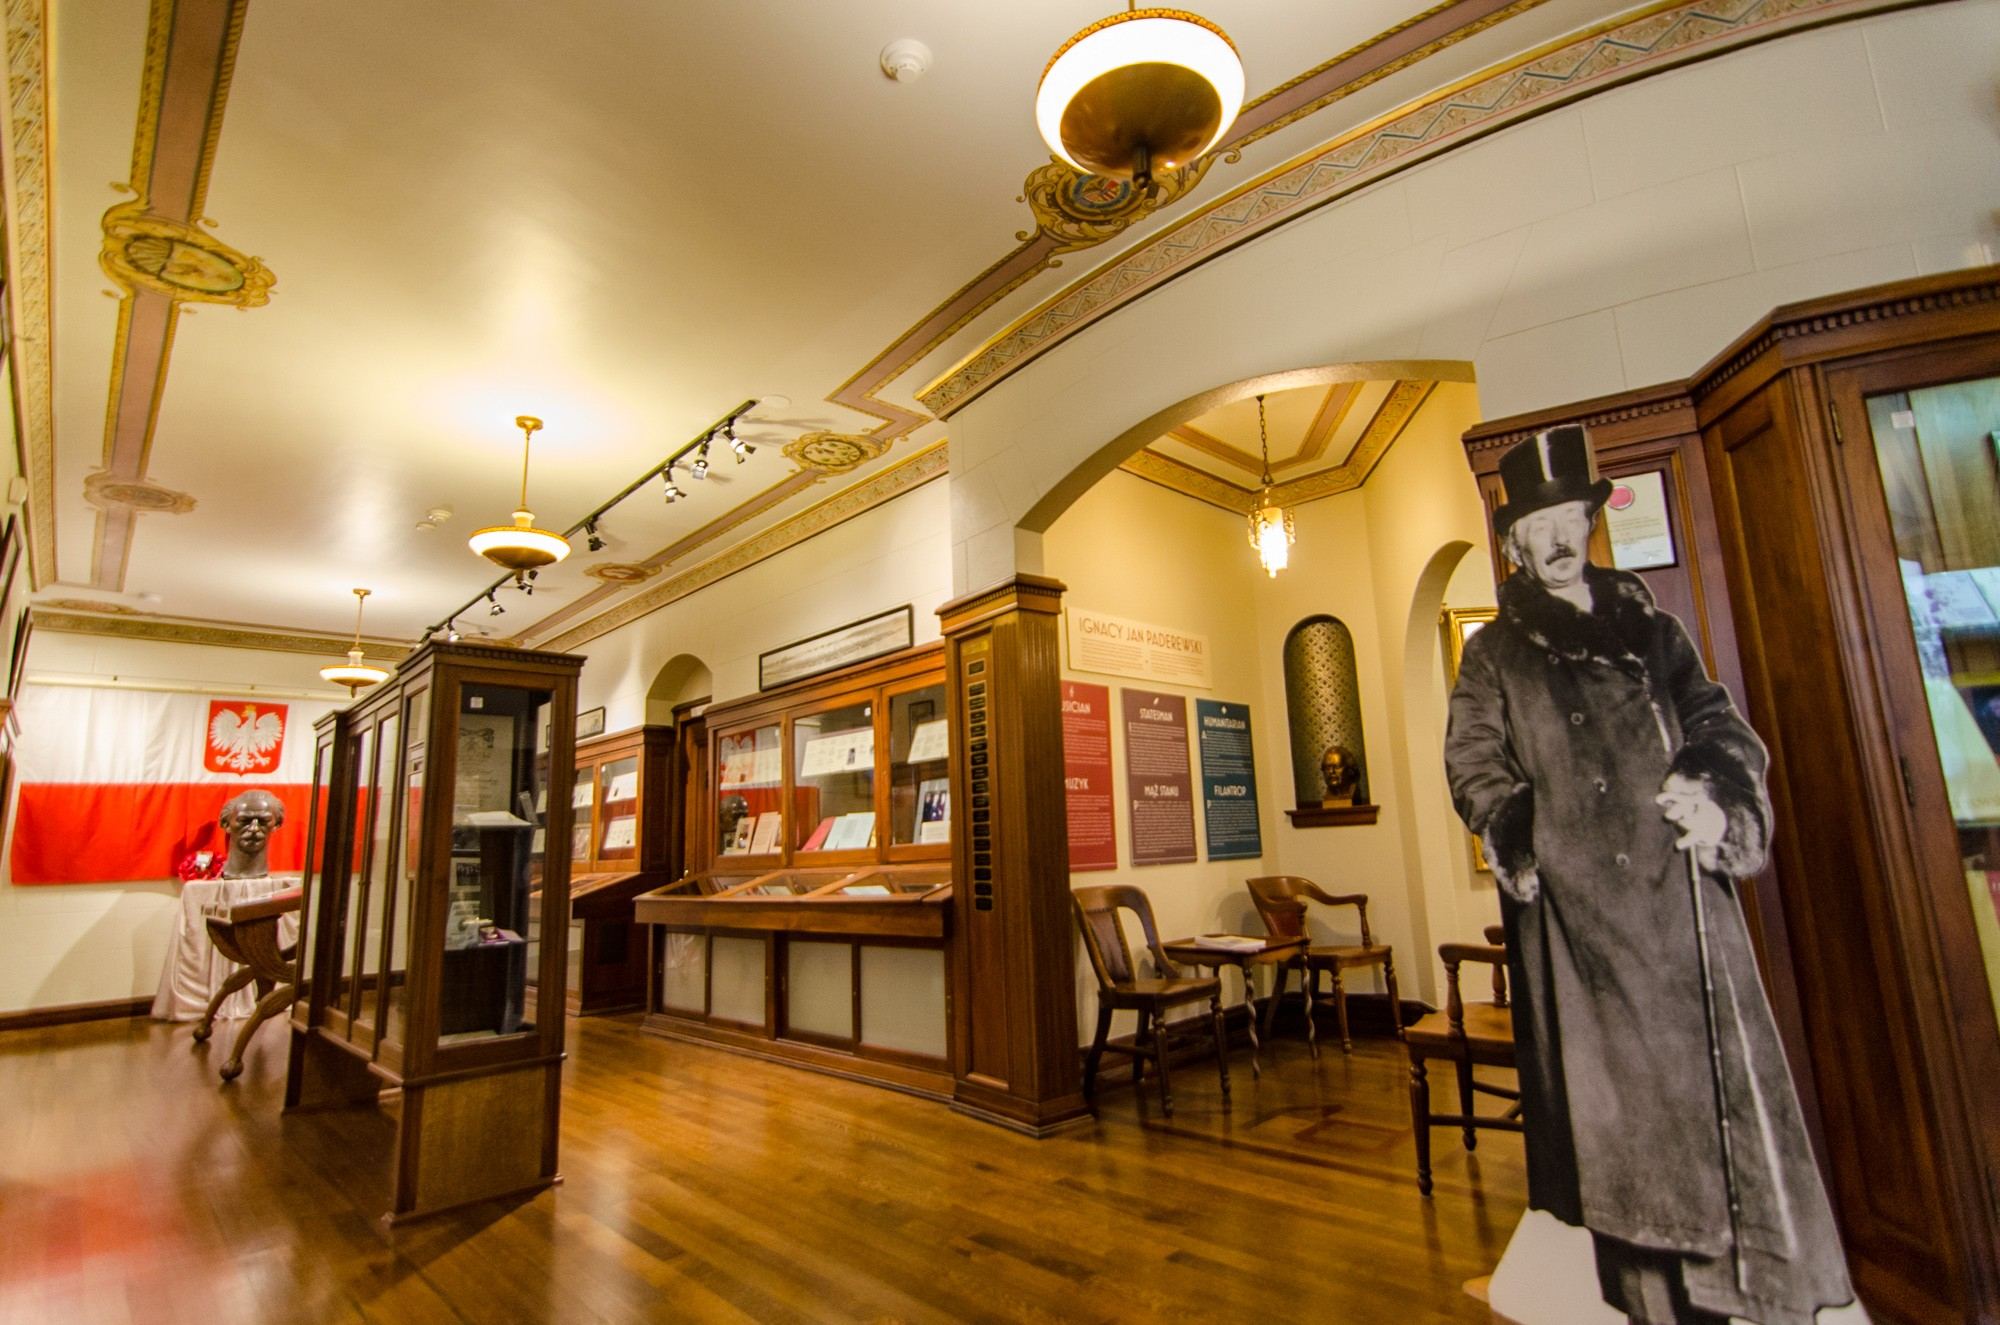 The museum has accumulated thousands of items relating to Polish history and culture over the years. Image obtained from Open House Chicago.